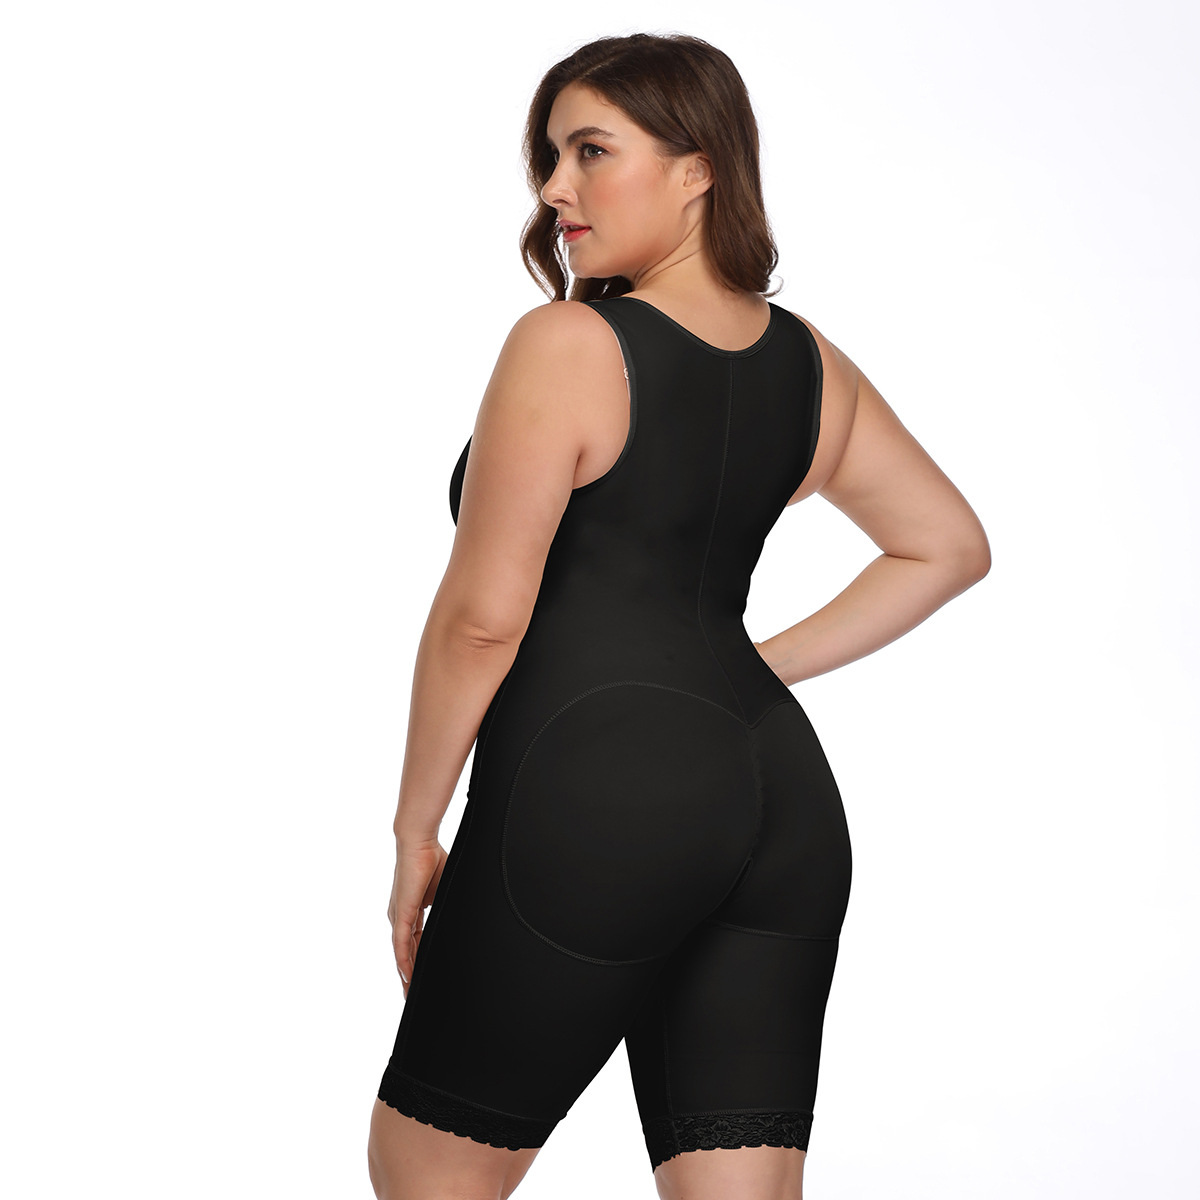 The materials is breathable. No itching! Comfortable. Back support